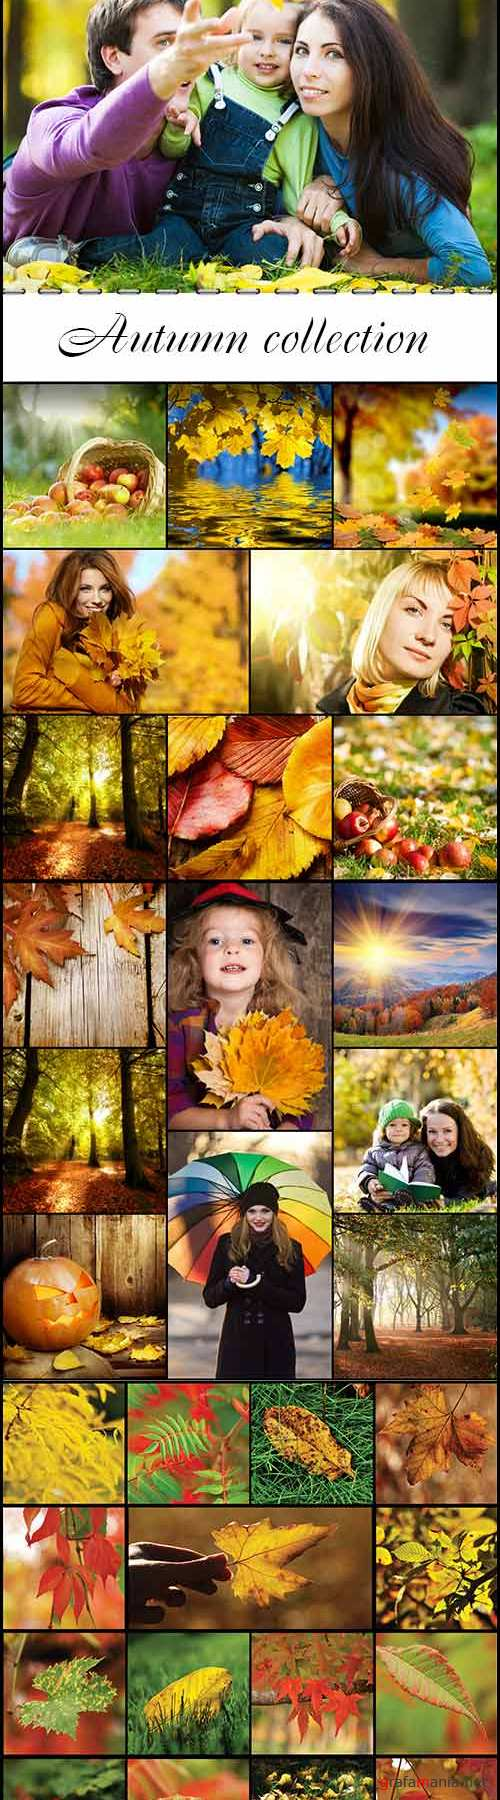 Autumn collection raster graphics